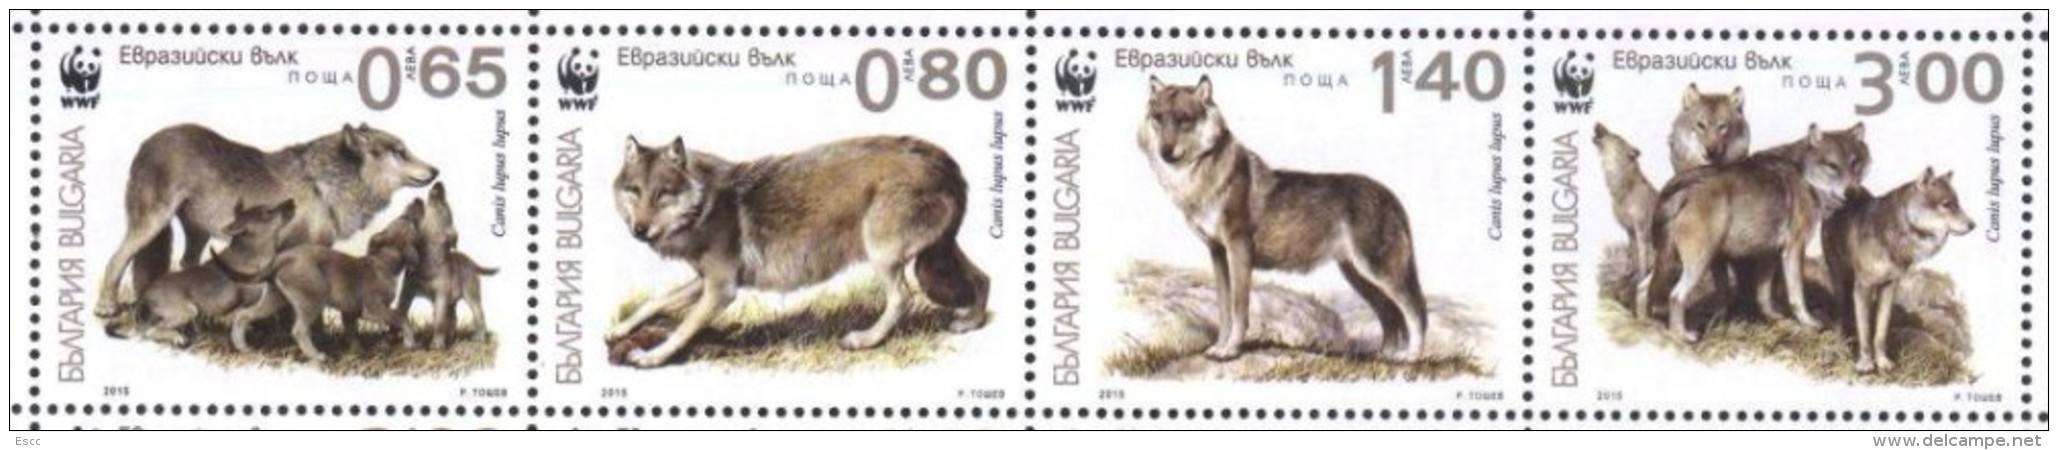 Mint  Stamps Fauna WWF Wolves 2015  From Bulgaria - Unused Stamps